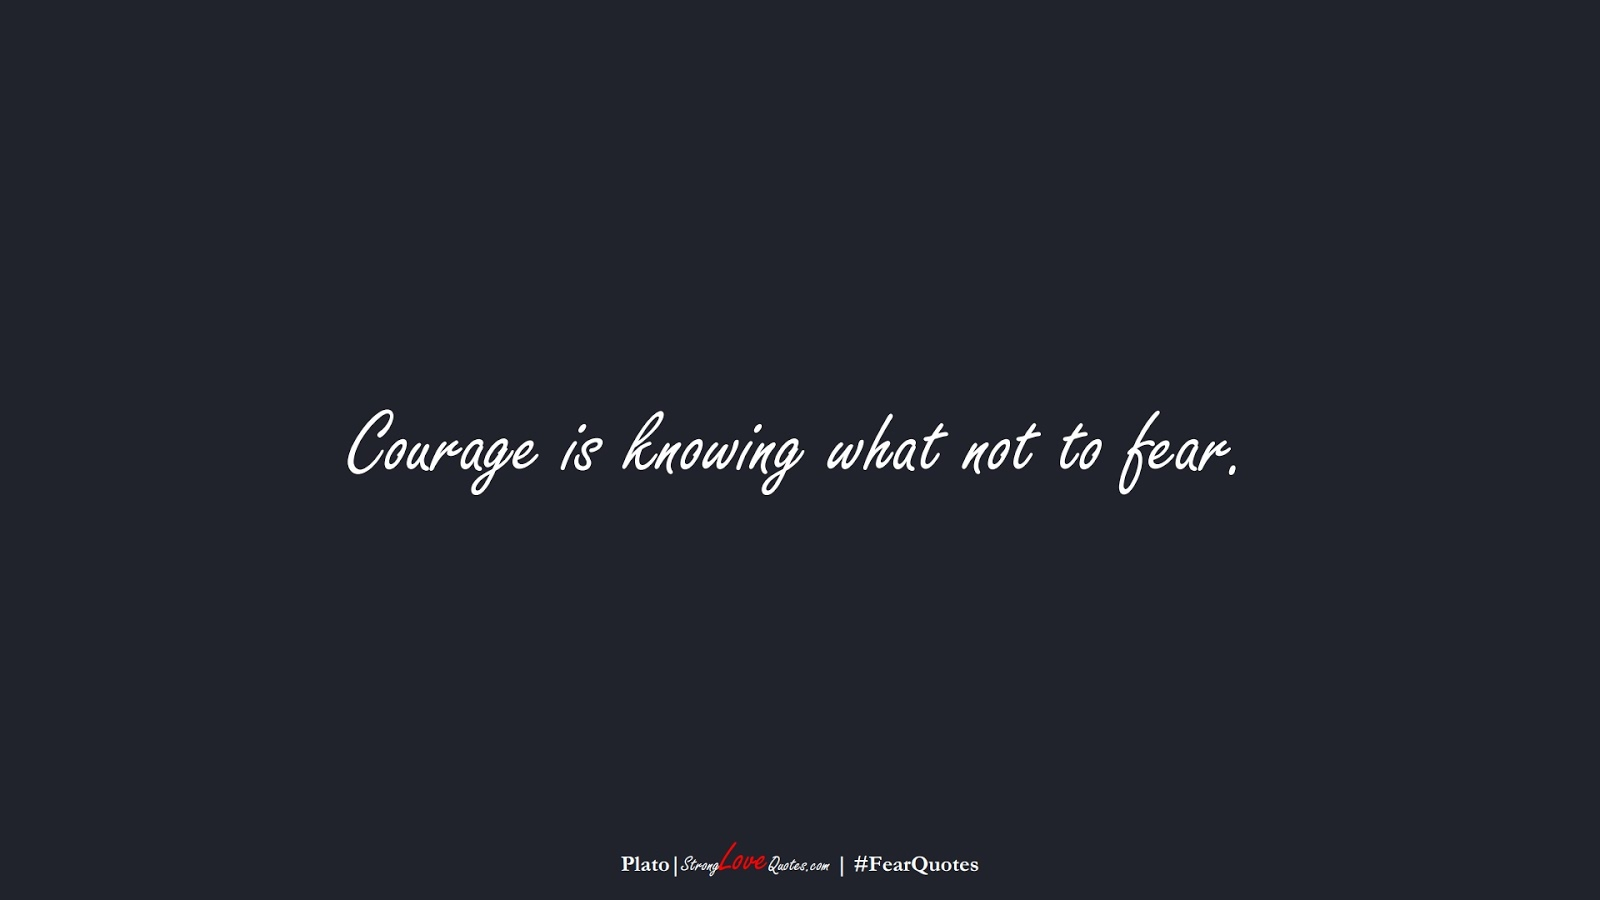 Courage is knowing what not to fear. (Plato);  #FearQuotes